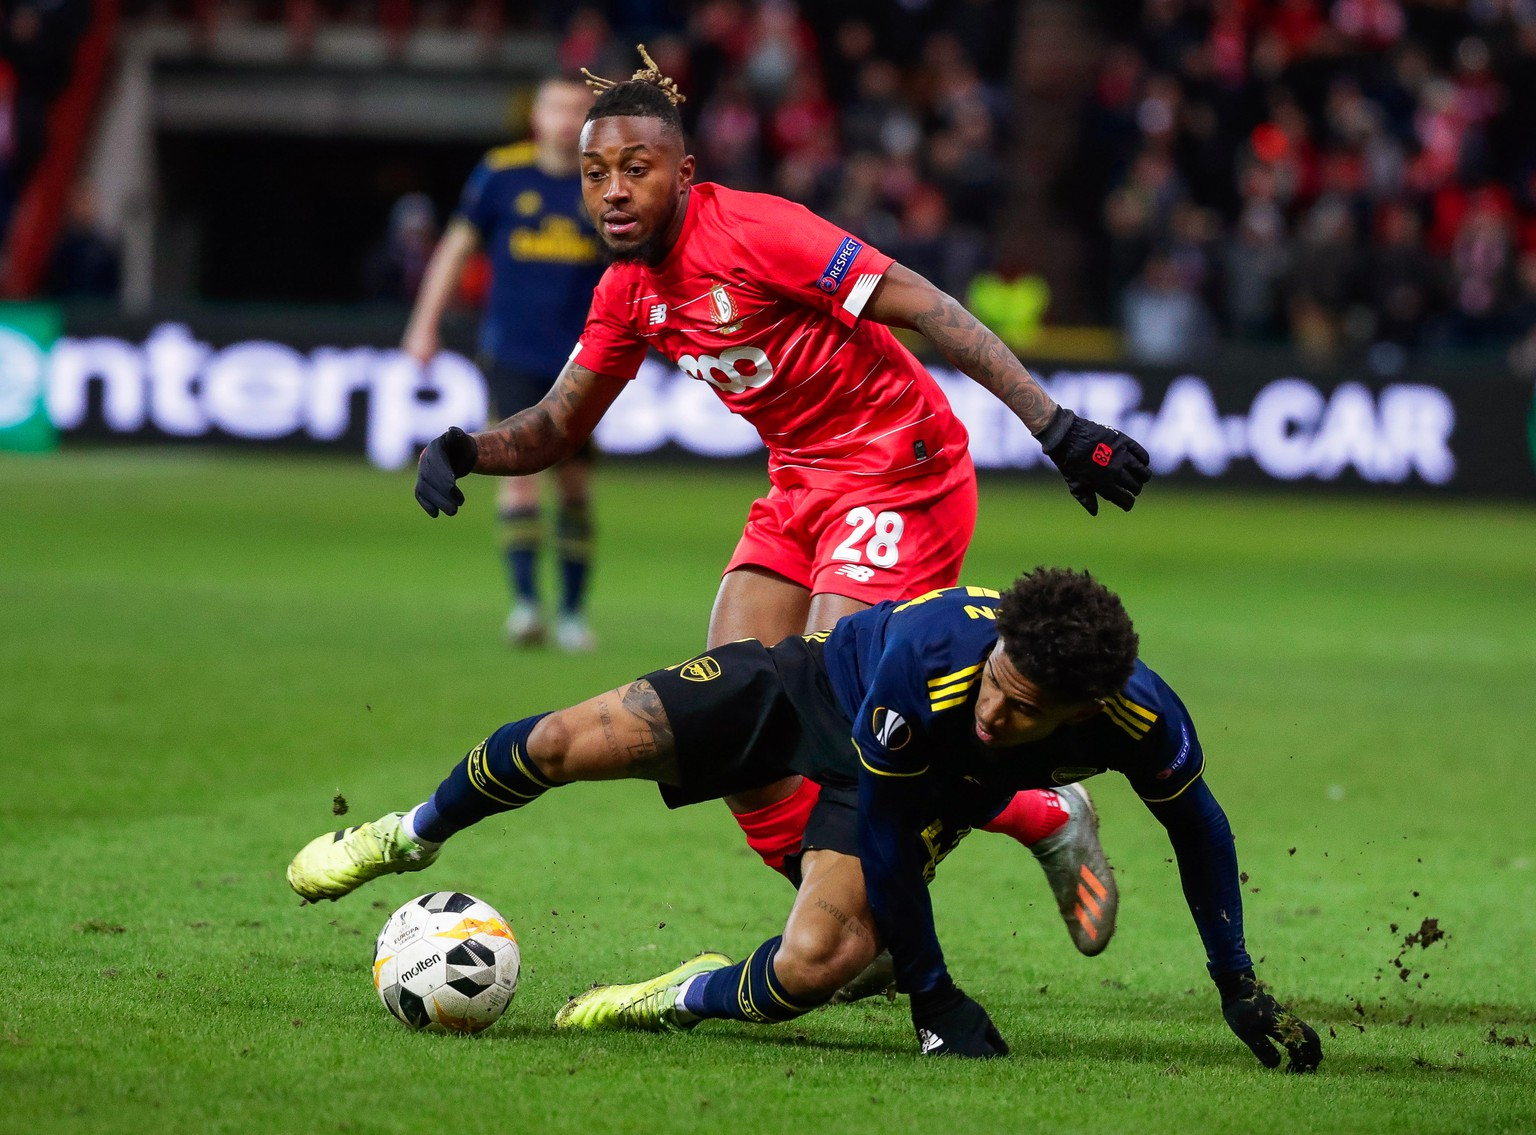 epa08066373 Reiss Nelson (bottom) of Arsenal in action against Samuel Bastien (up) of Liege during the UEFA Europa League group F soccer match between Standard Liege and Arsenal FC at Stade Maurice Dufrasne in Liege, Belgium, 12 December 2019.  EPA/STEPHANIE LECOCQ